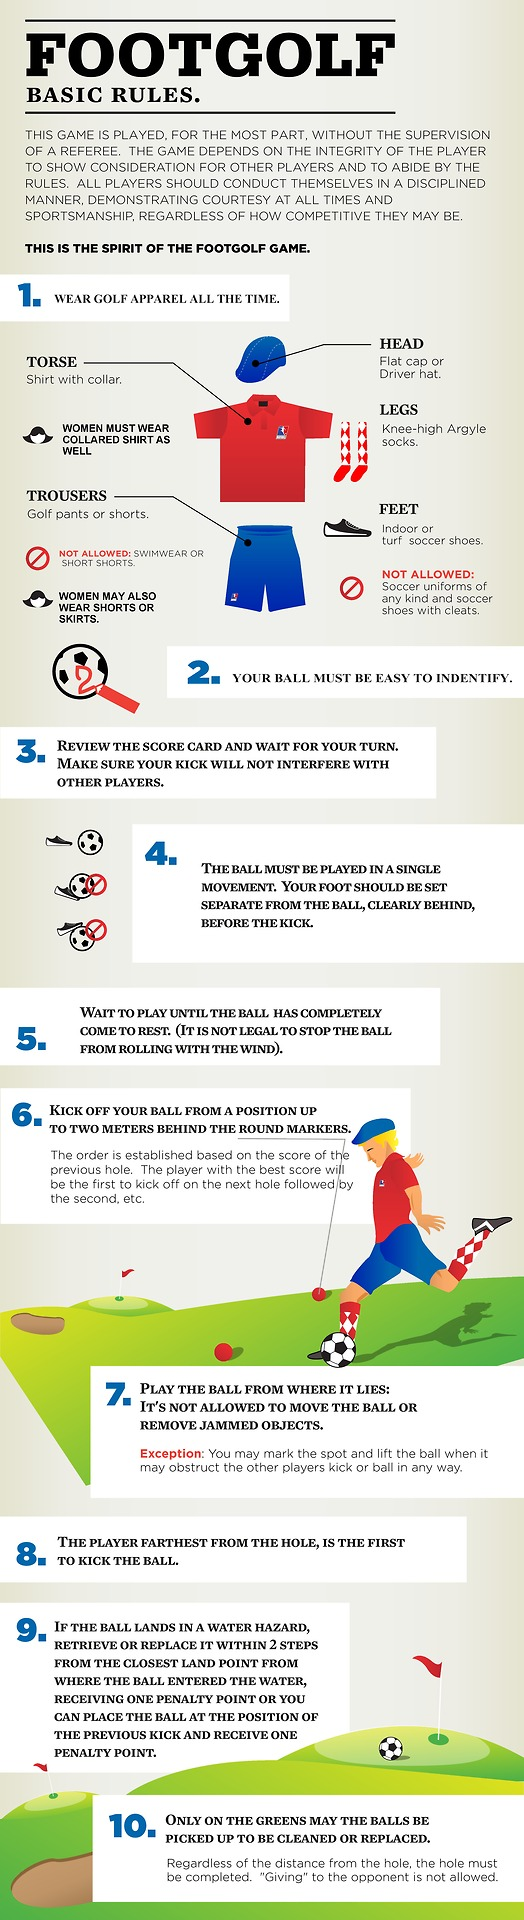 Footgolf Rules Image